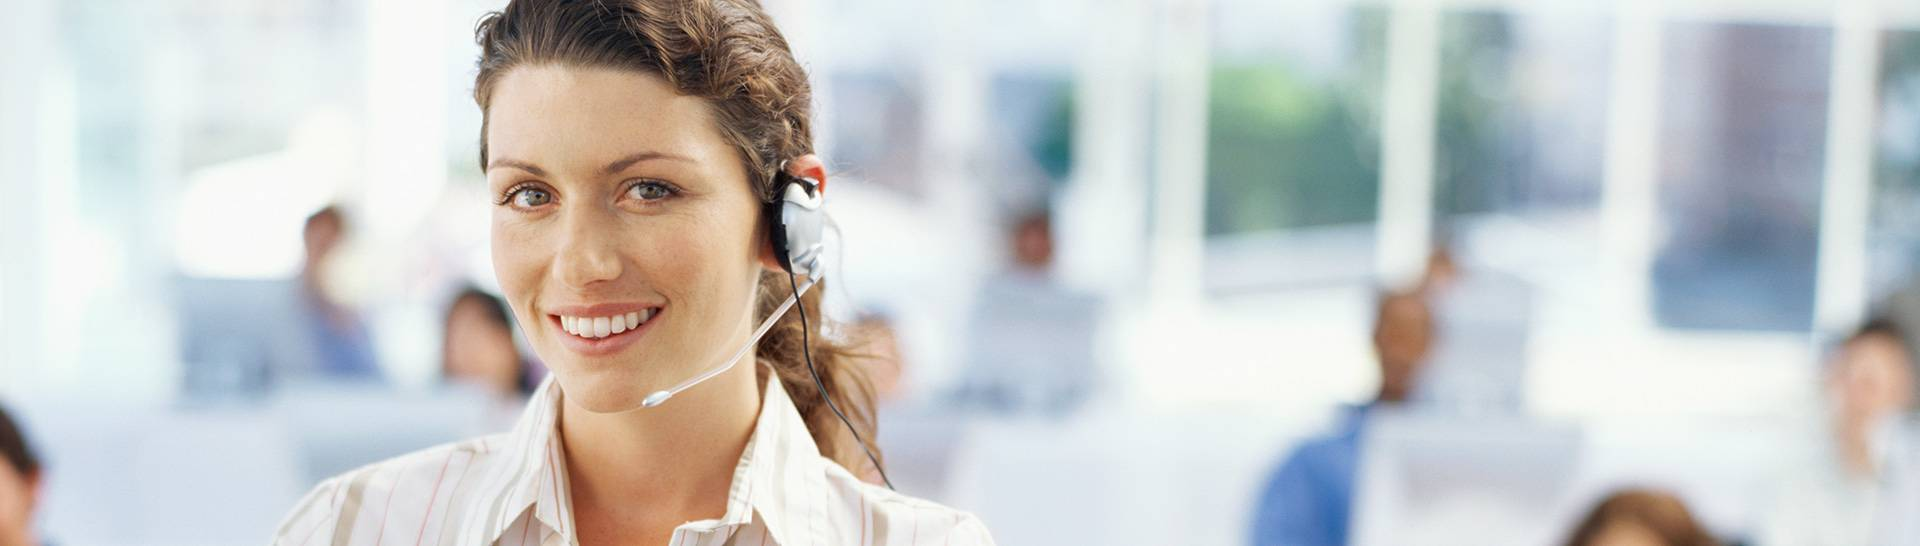 Woman with green eyes and ponytail and headset with call center in background - natural light office building